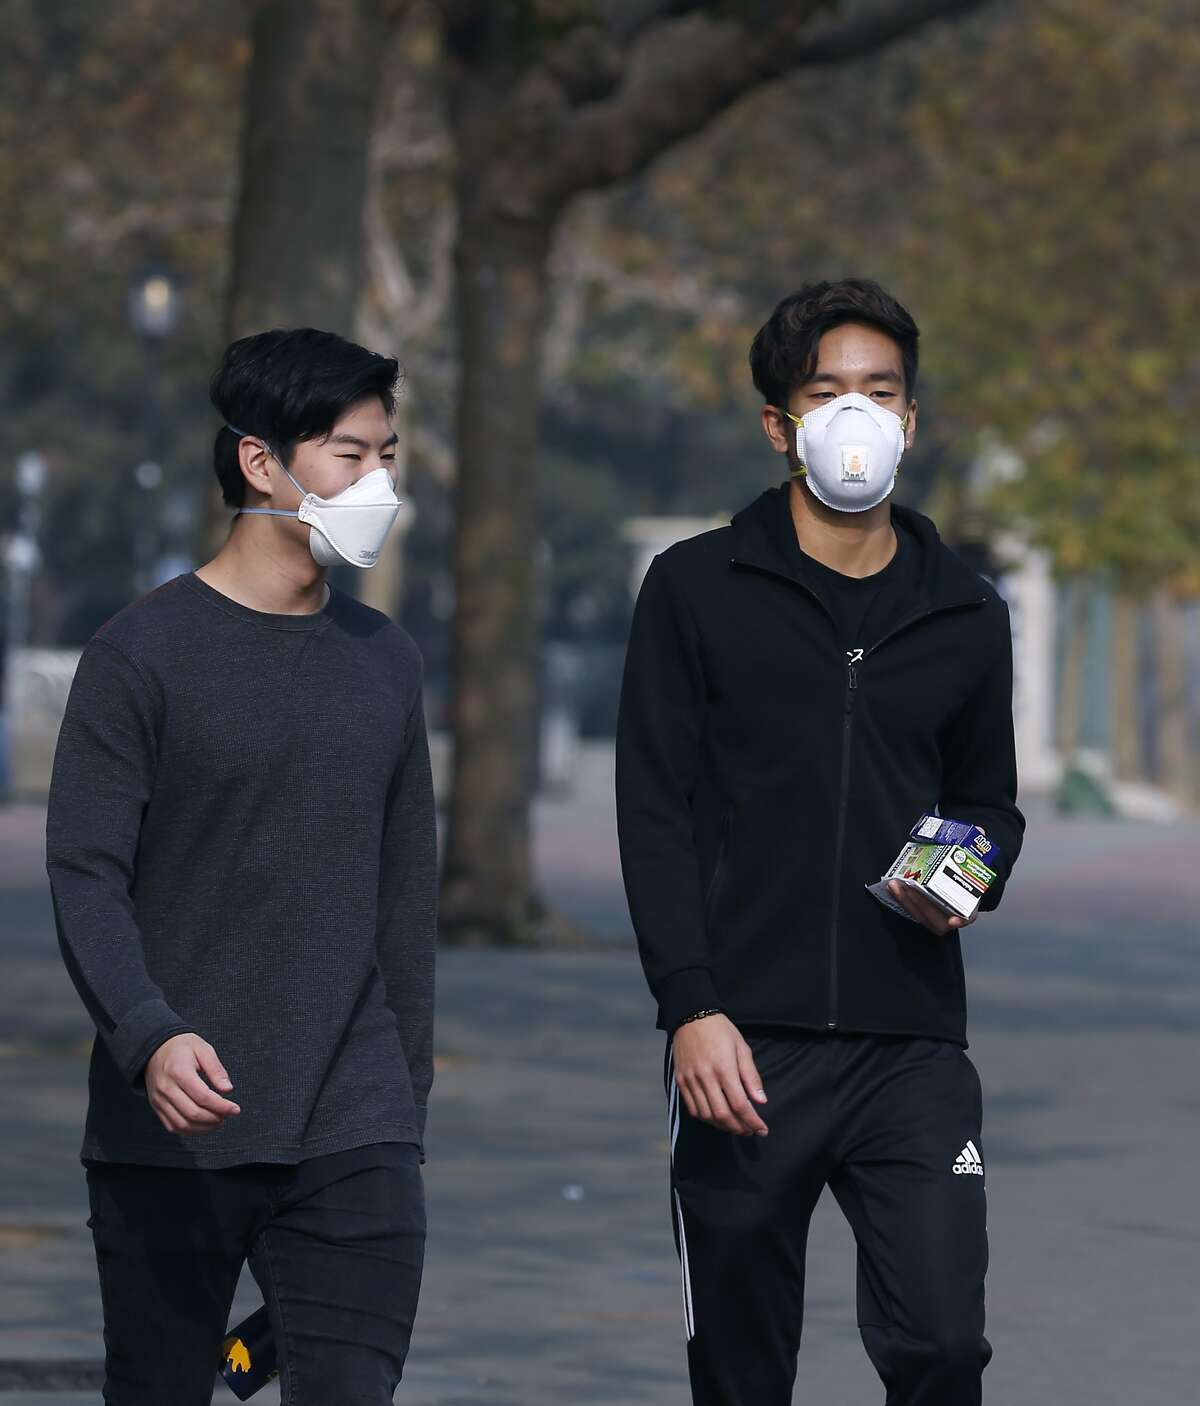 HOW BAD IS THE AIR? Keep clicking or swiping through the gallery to see BEFORE and AFTER. ==> York Wang (left) and Chris Ko wear breathing masks while walking theough Sproul Plaza at UC Berkeley on Friday, Nov. 16, 2018. Ko says he?•s already sick, so trying to avoid the bad air is really difficult. University officials cancelled classes Friday because of the unhealthy air conditions which continue to choke the Bay Area with heavy smoke from the Camp Fire in Butte County.